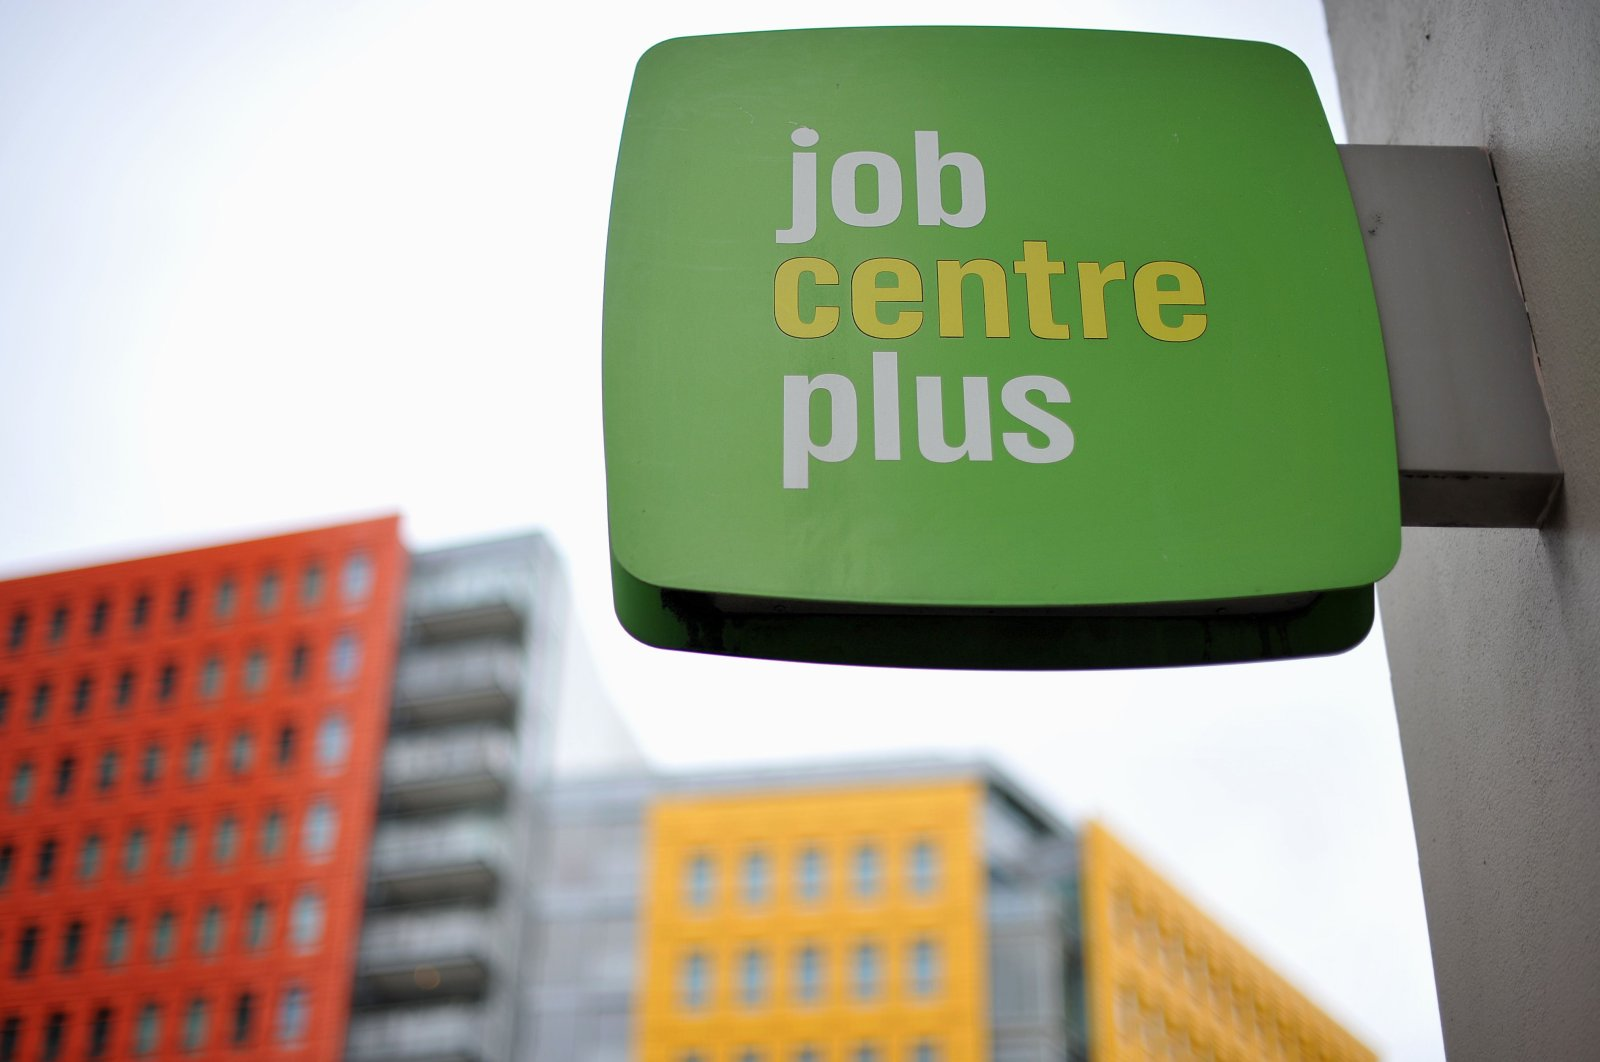 A Job Centre Plus sign is pictured in central London, England, Oct. 12, 2011. (AFP Photo)